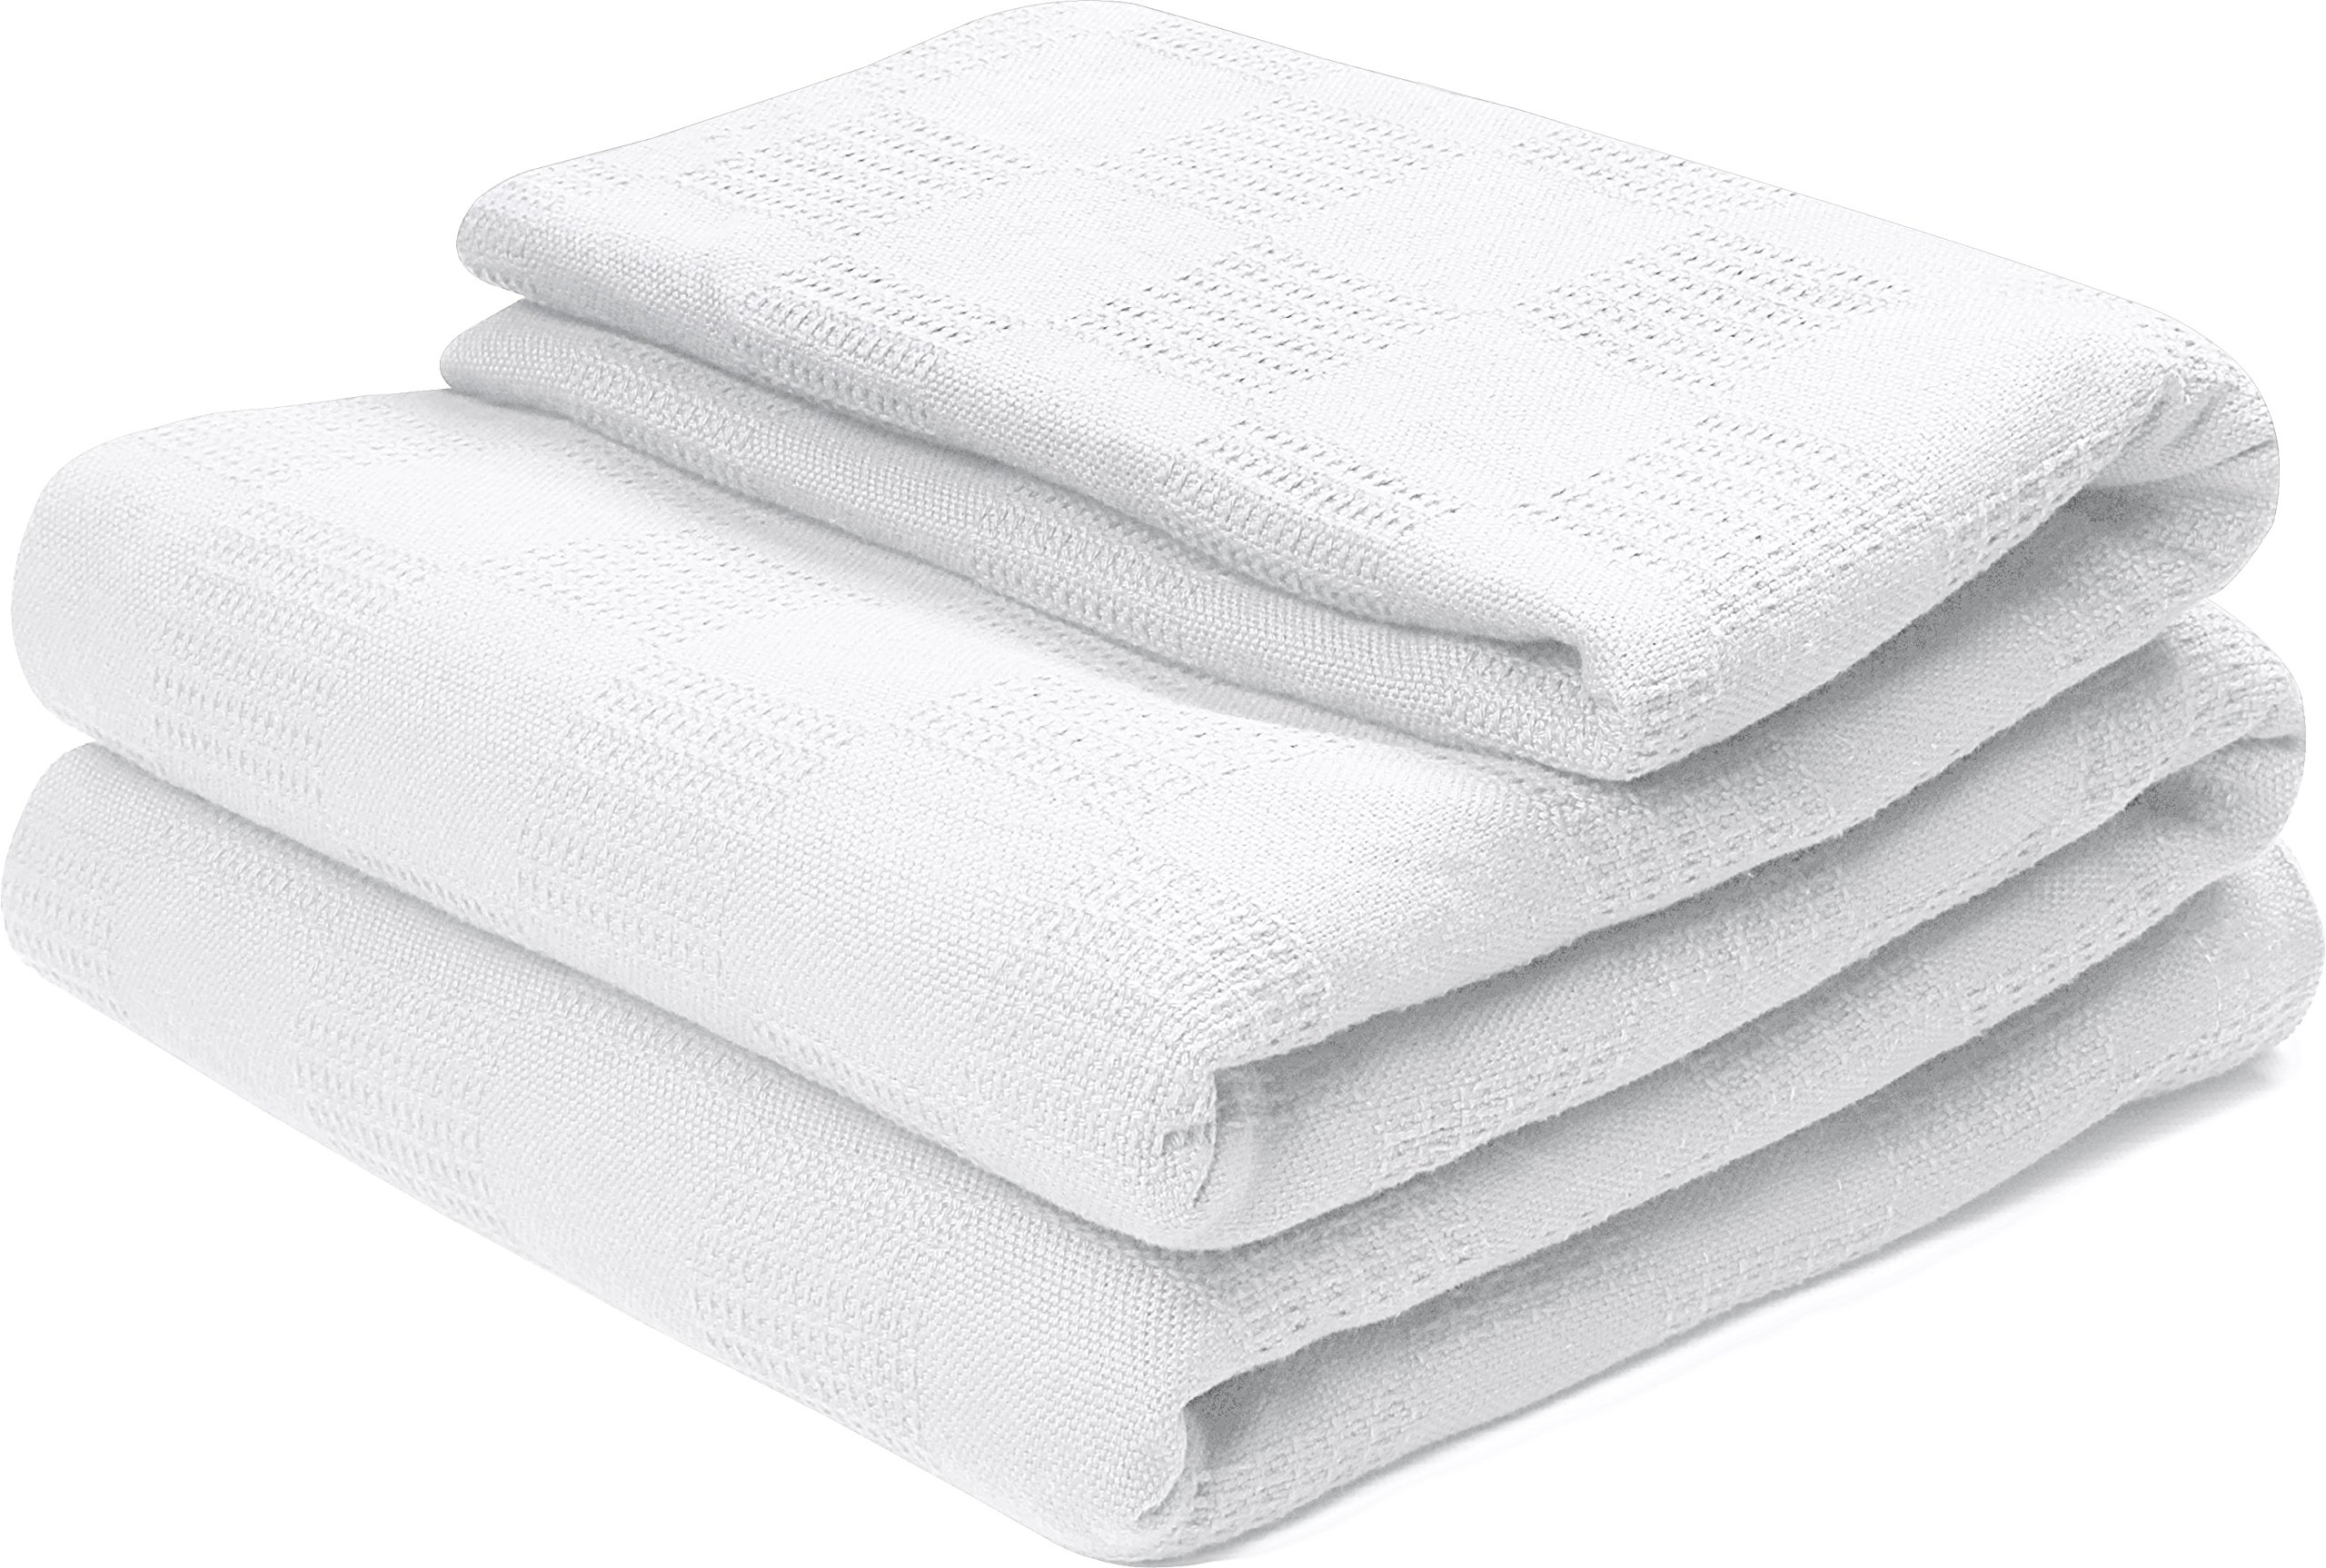 Utopia Bedding 100% Premium Woven Cotton Blanket (Twin, White) Breathable Cotton Throw Blanket Quilt Bed & Couch/Sofa